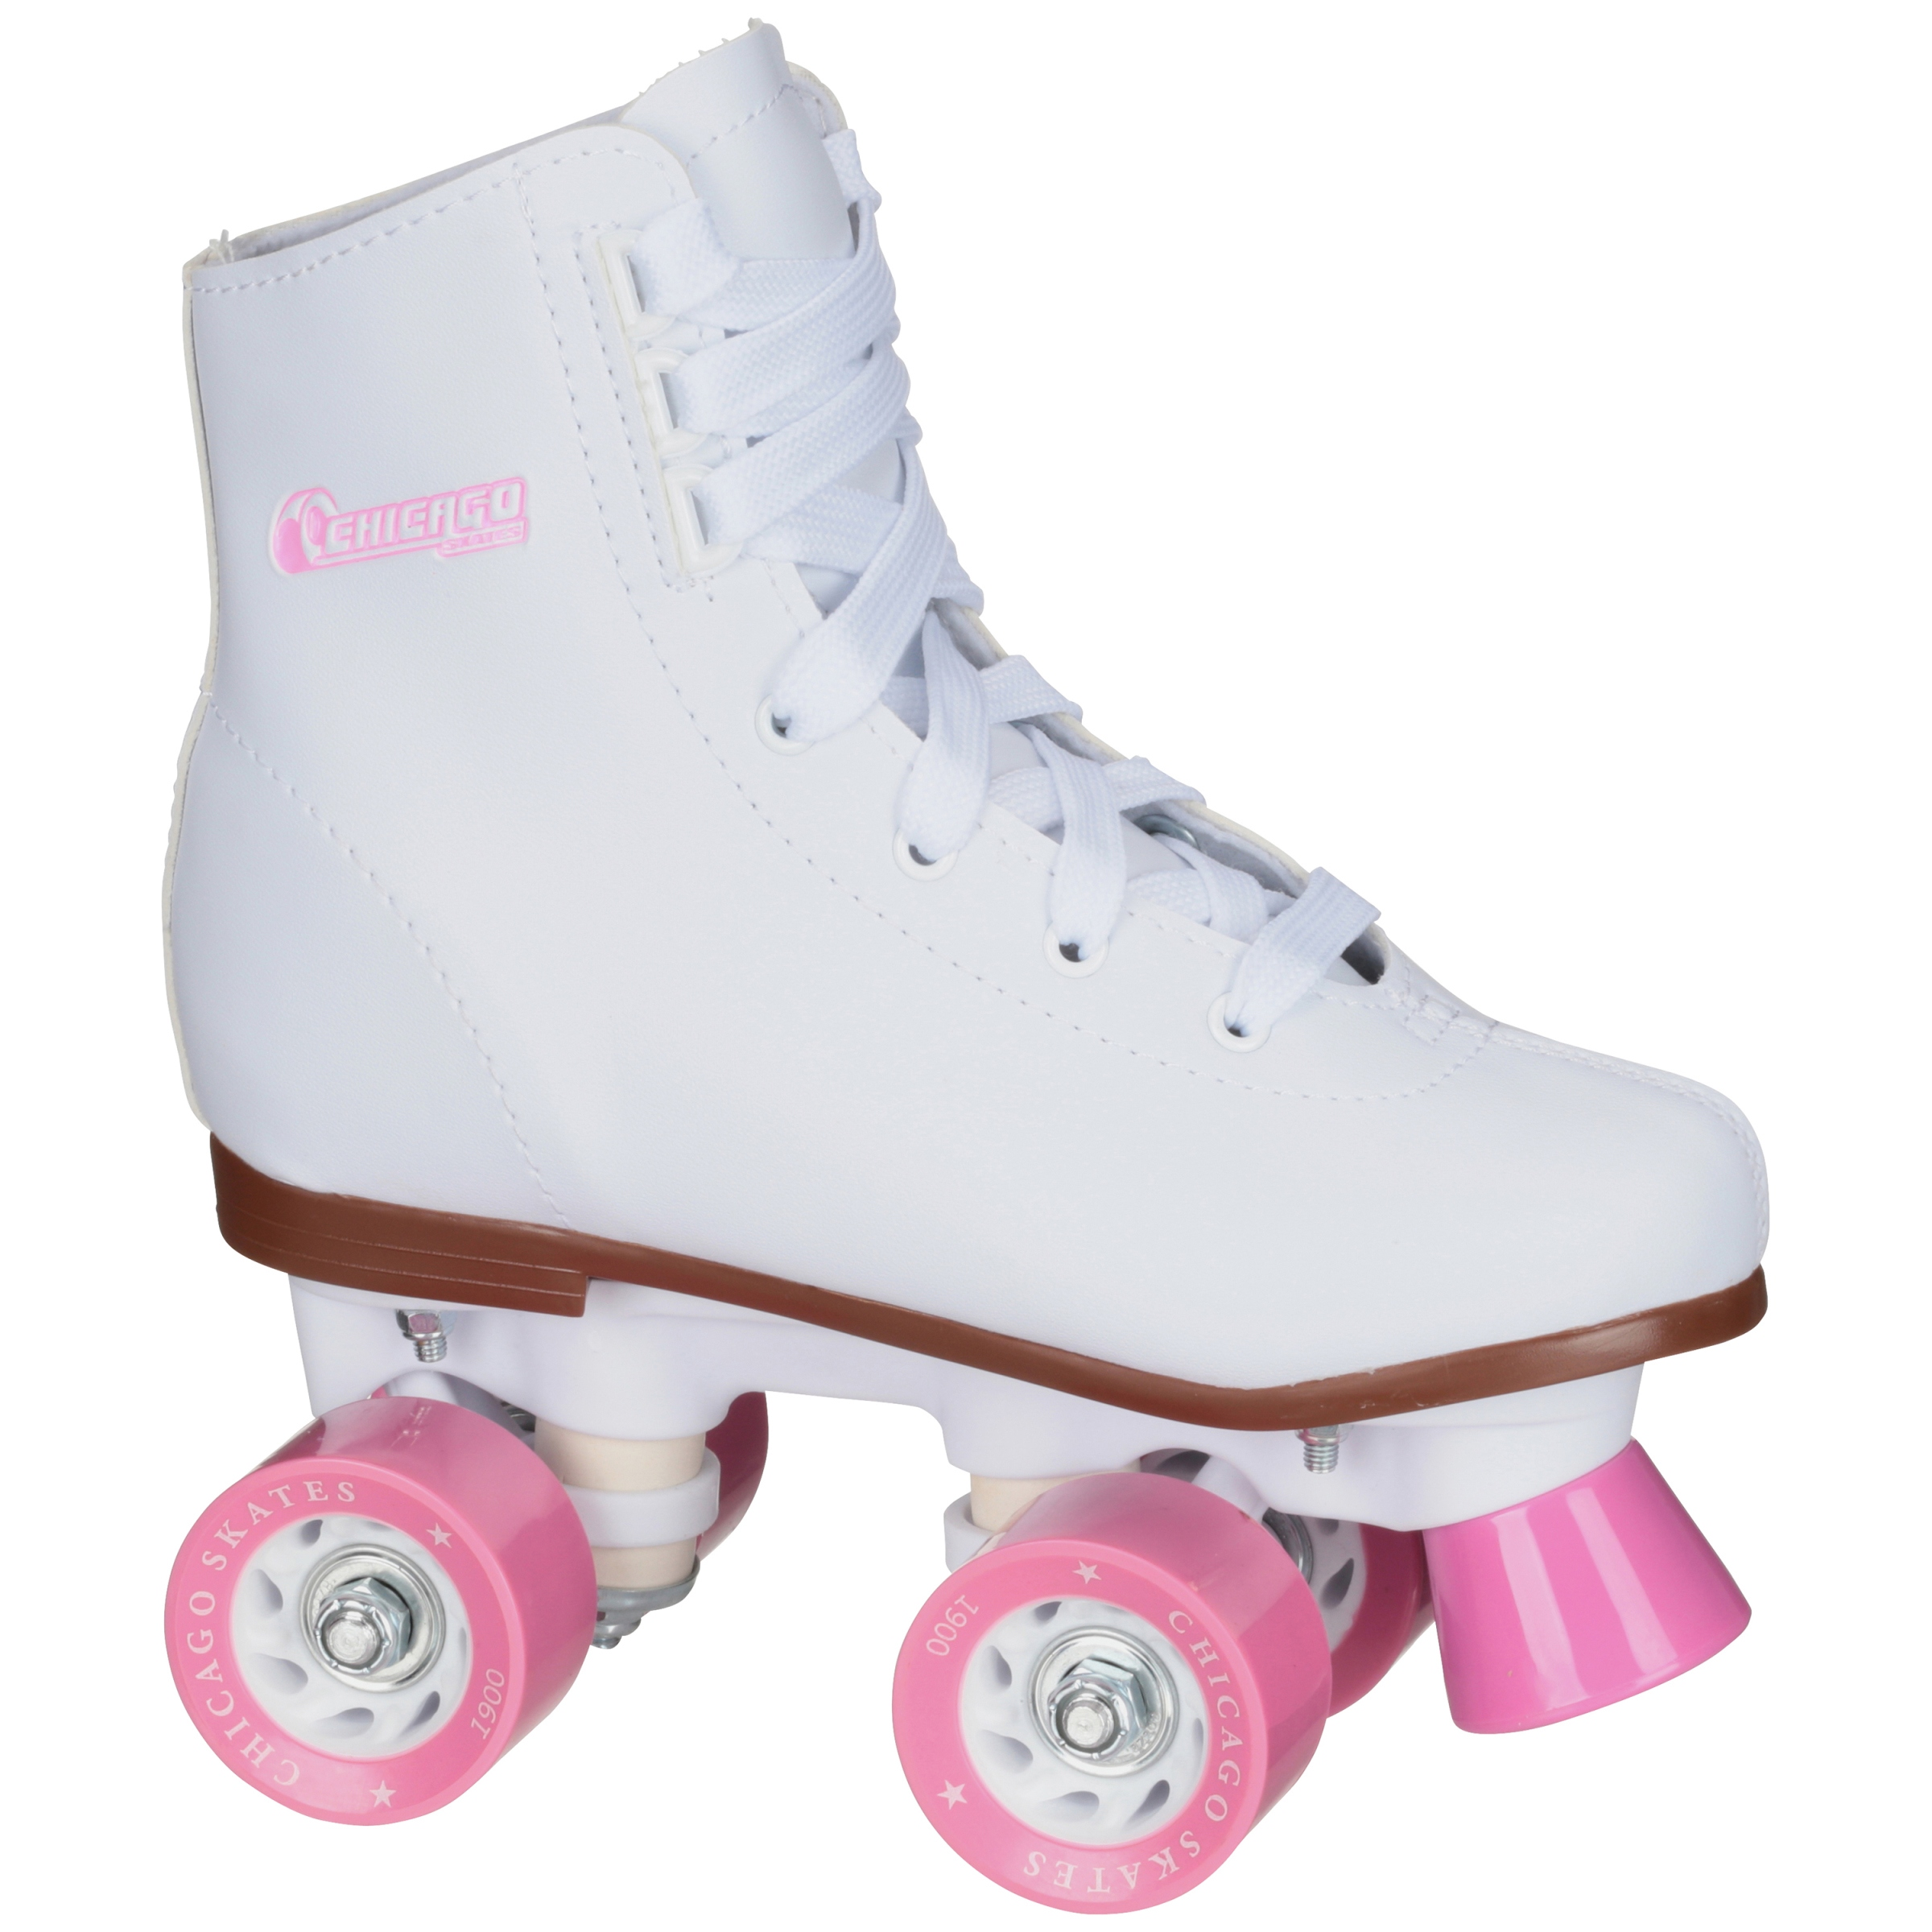 Chicago Skates® Girl's White Size J10 Roller Skates Box